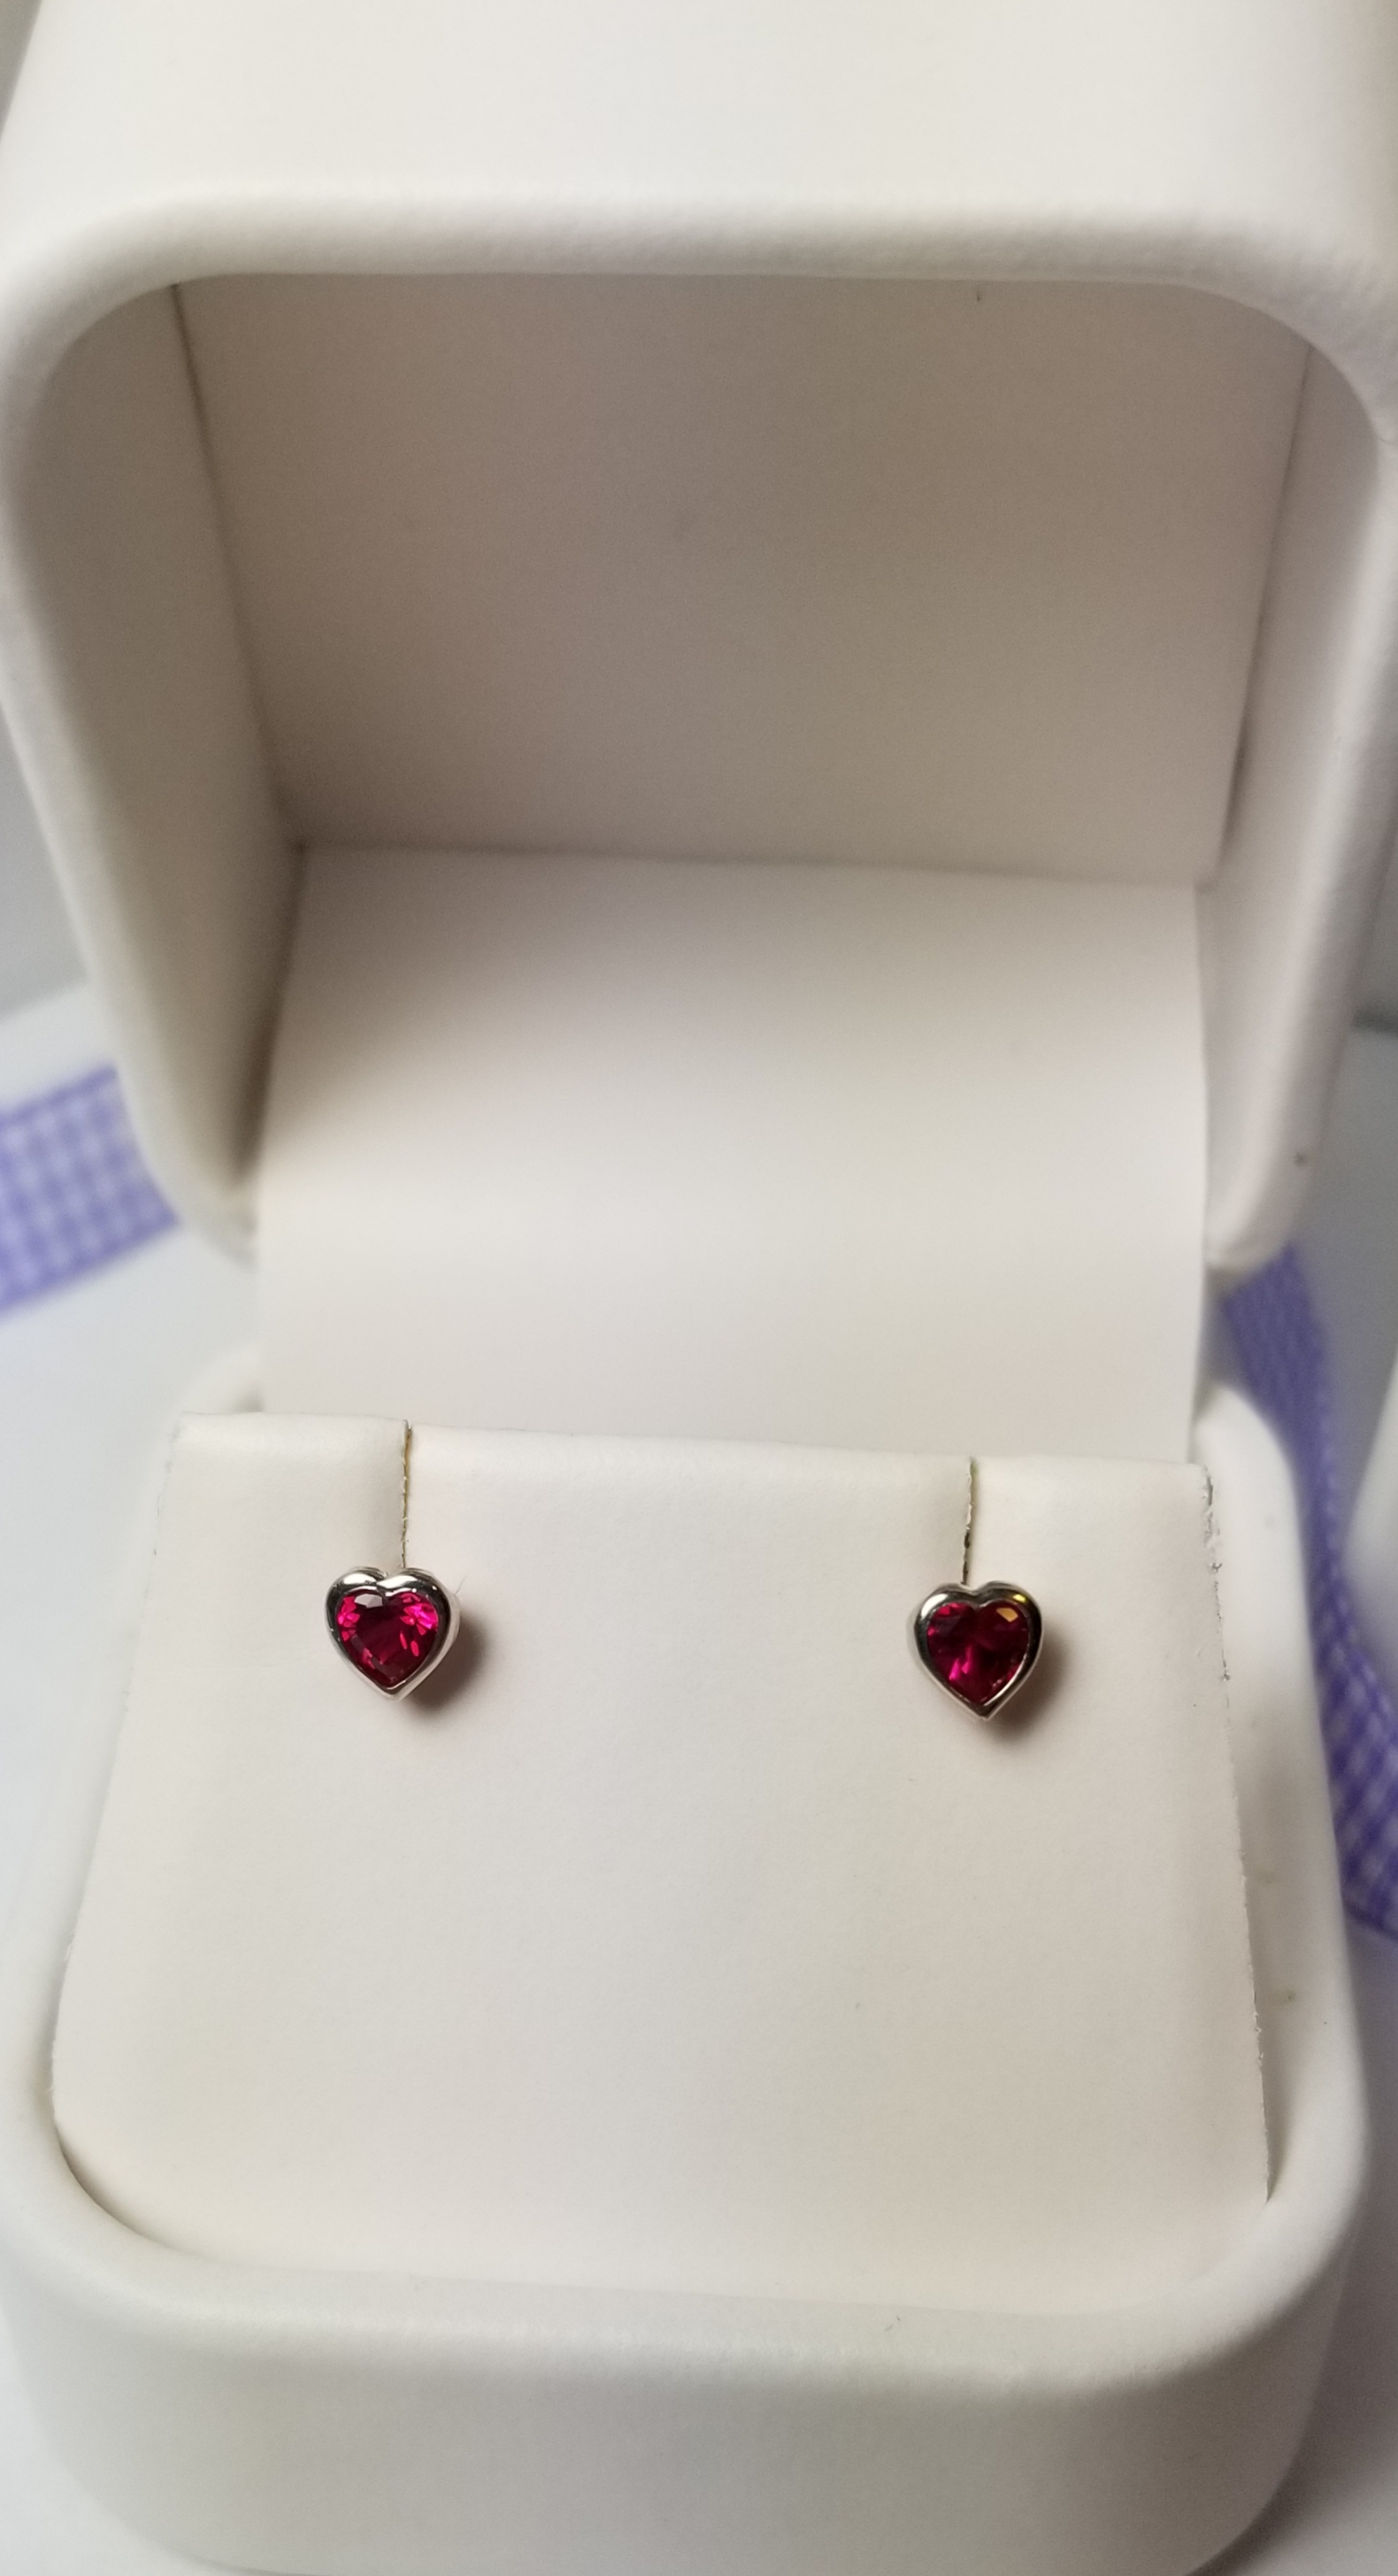 Heart Screw Back Earrings July